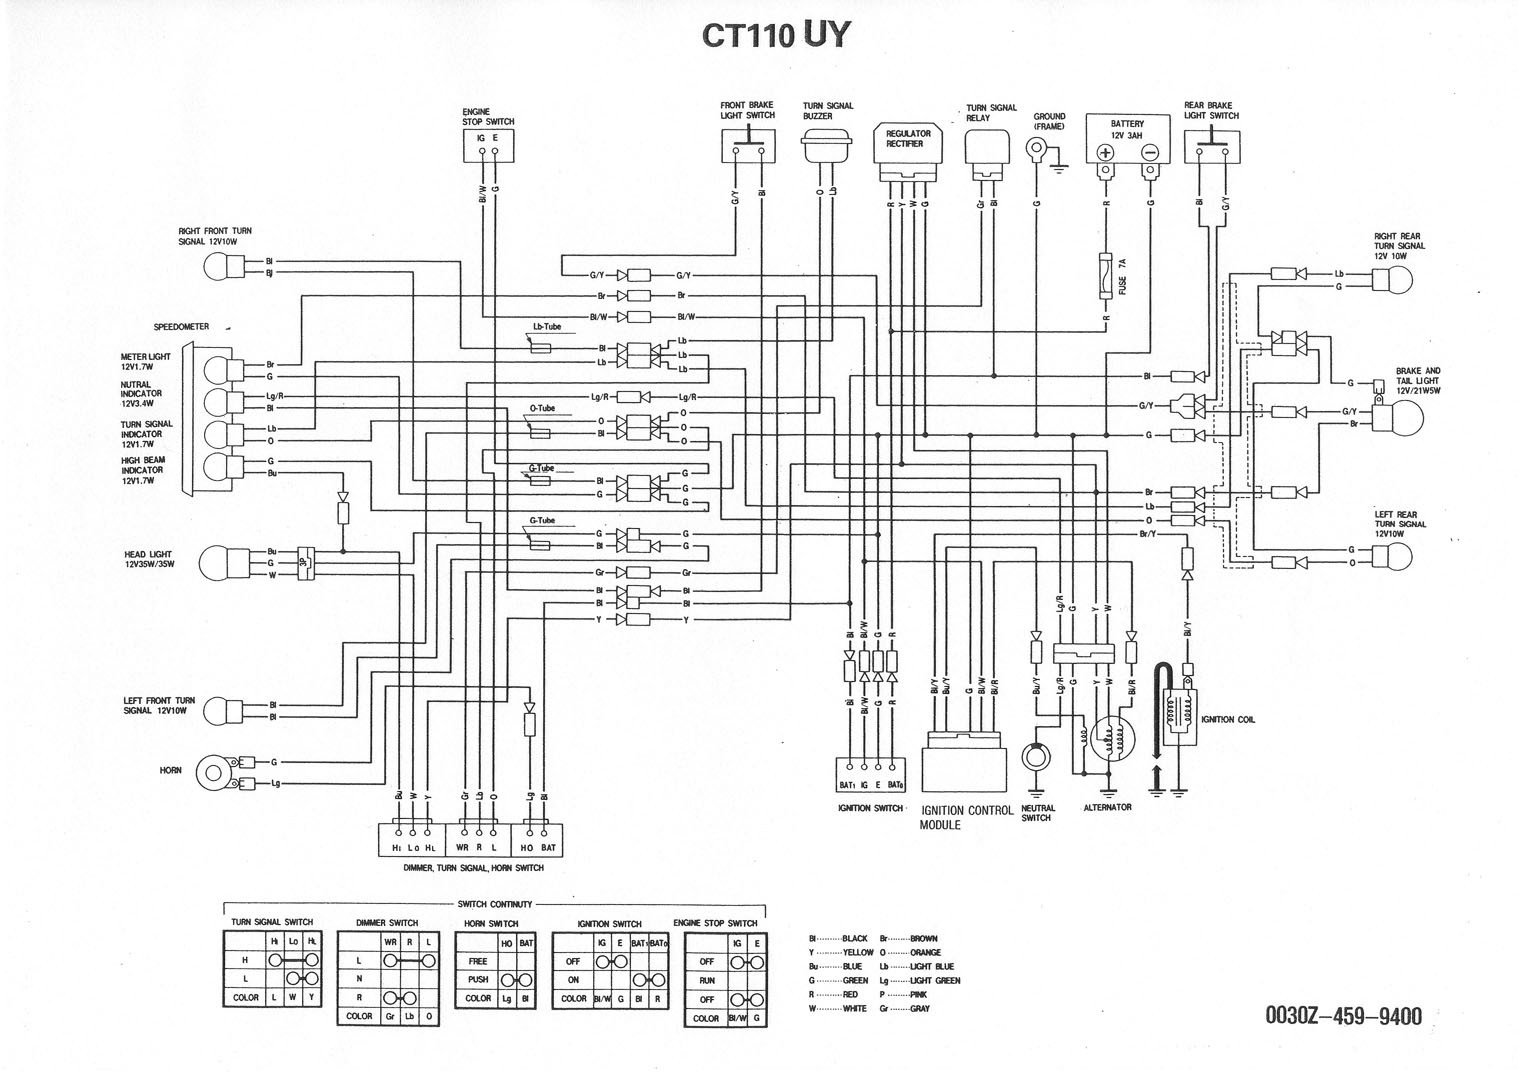 ct90 wiring diagram subaru impreza stereo honda ct110 free engine image for